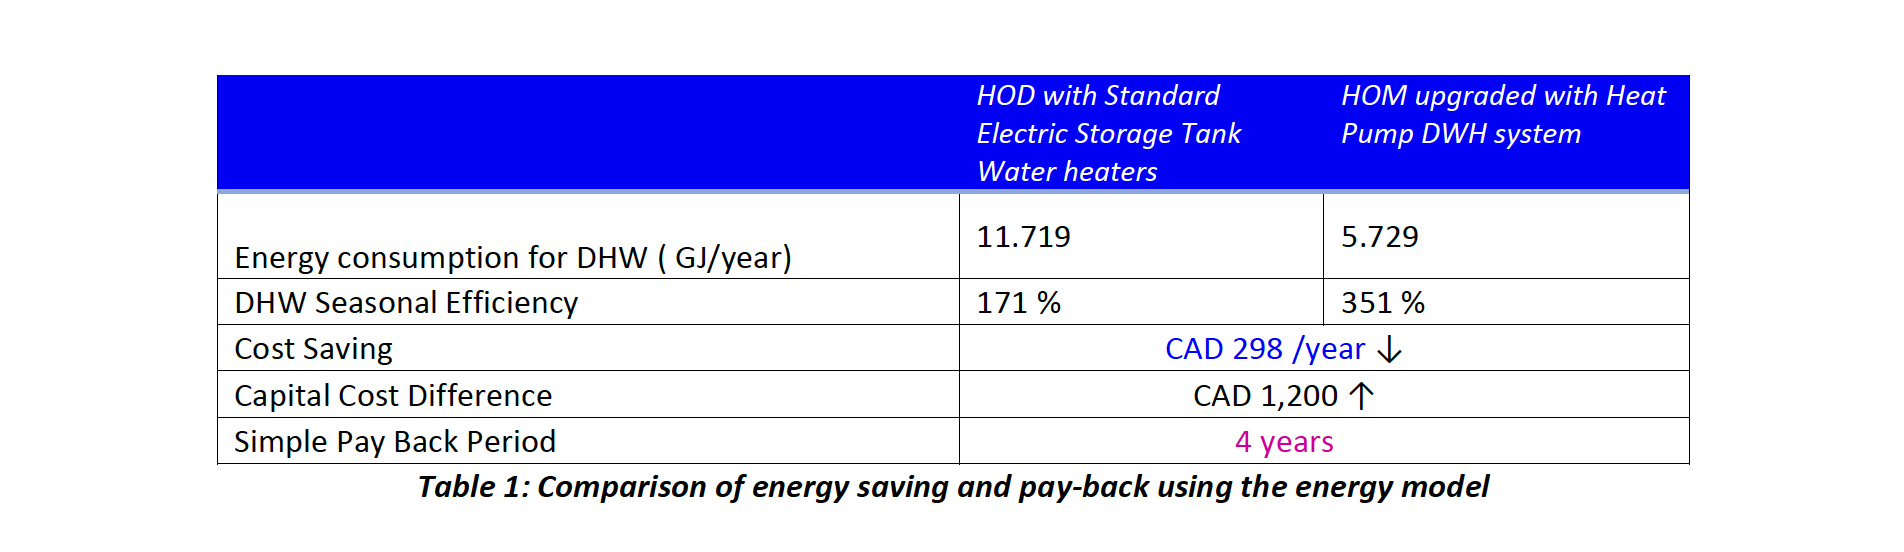 Table 1 - Comparison of energy saving and pay back - wilden living lab